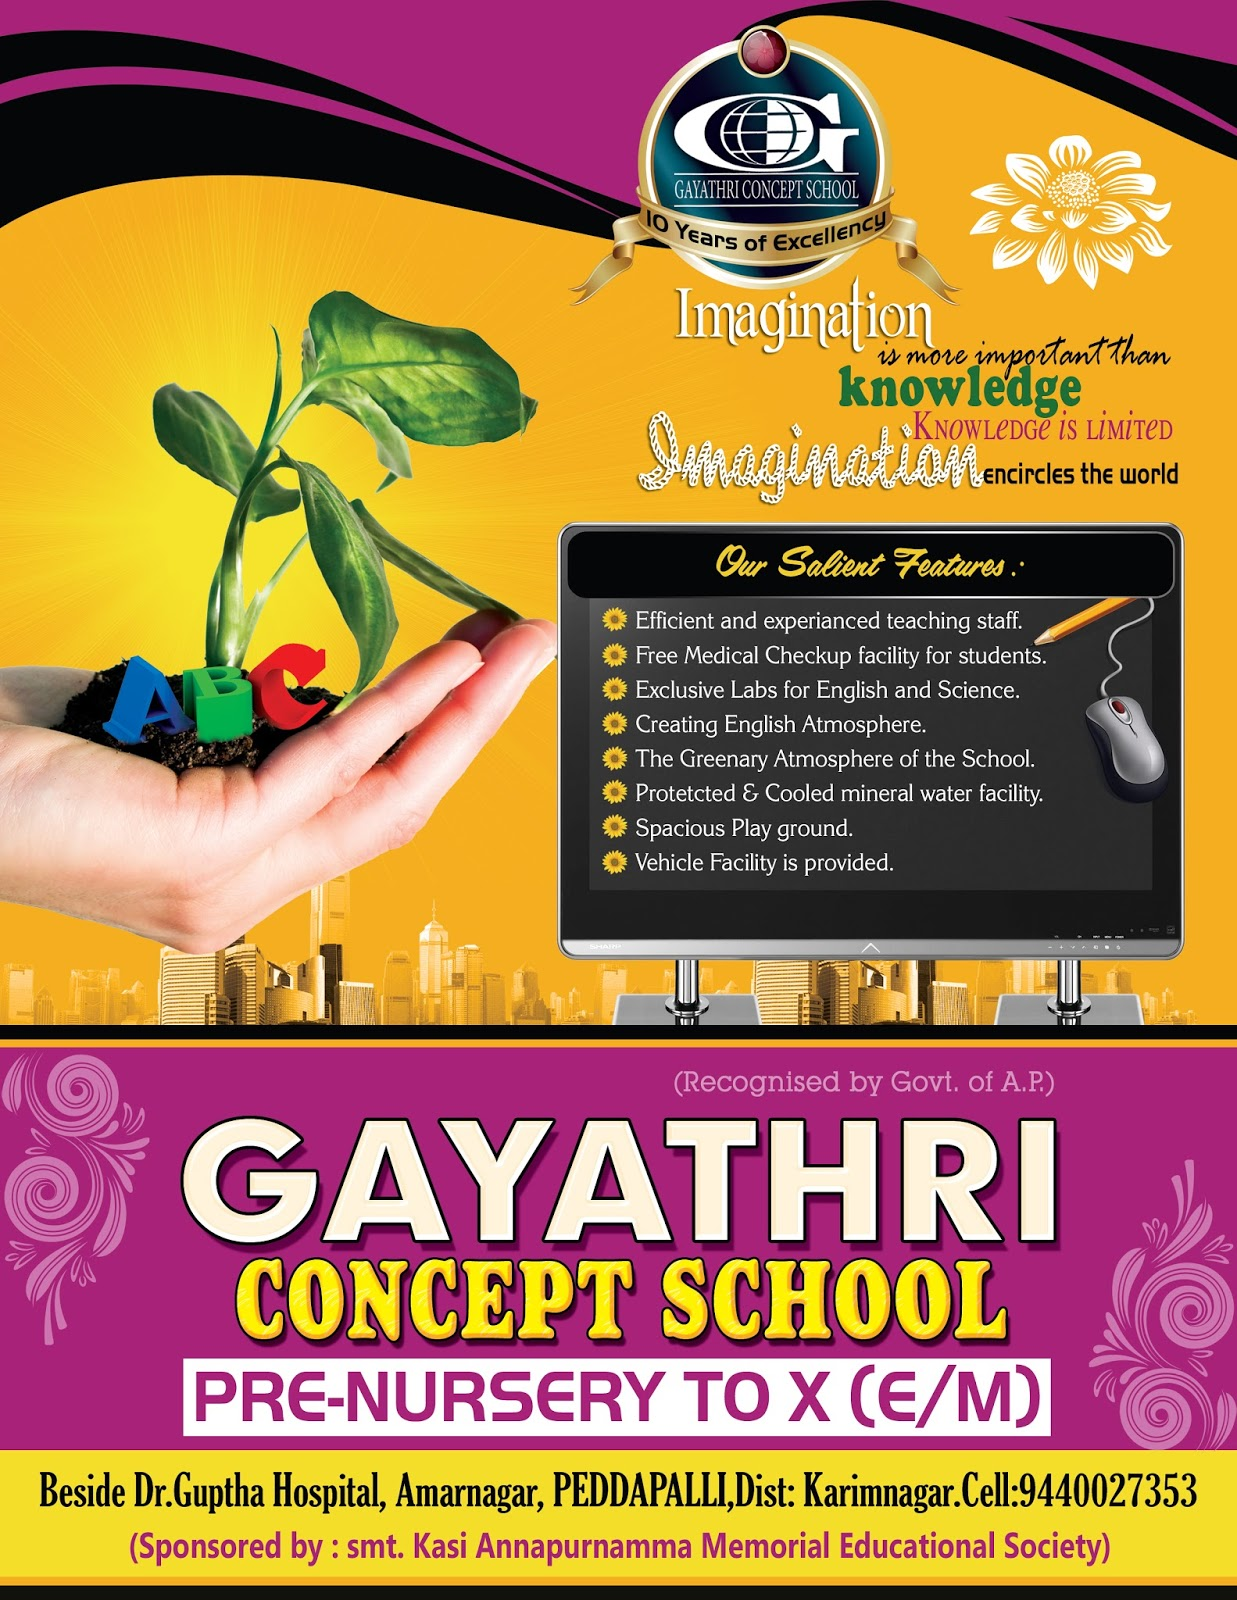 gayatri school brochure design template psd free download